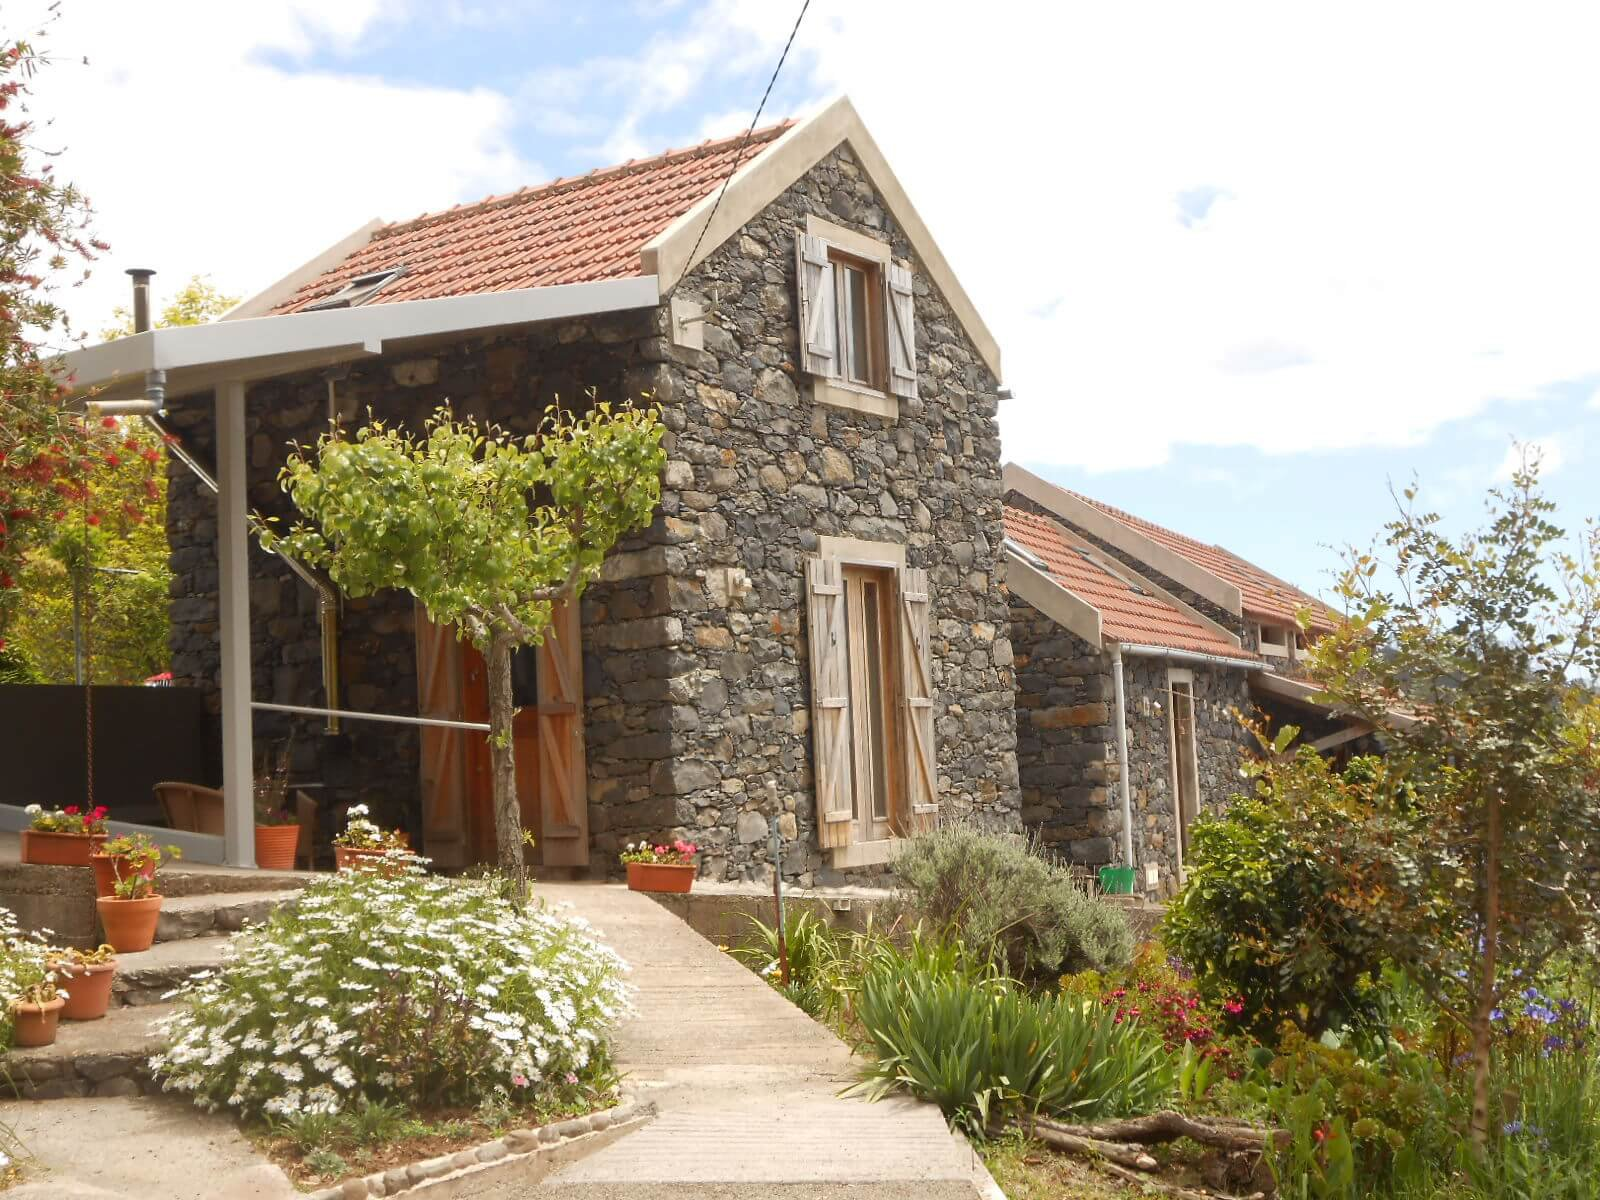 Unique in Madeira, House and Guest House in Natural Stones